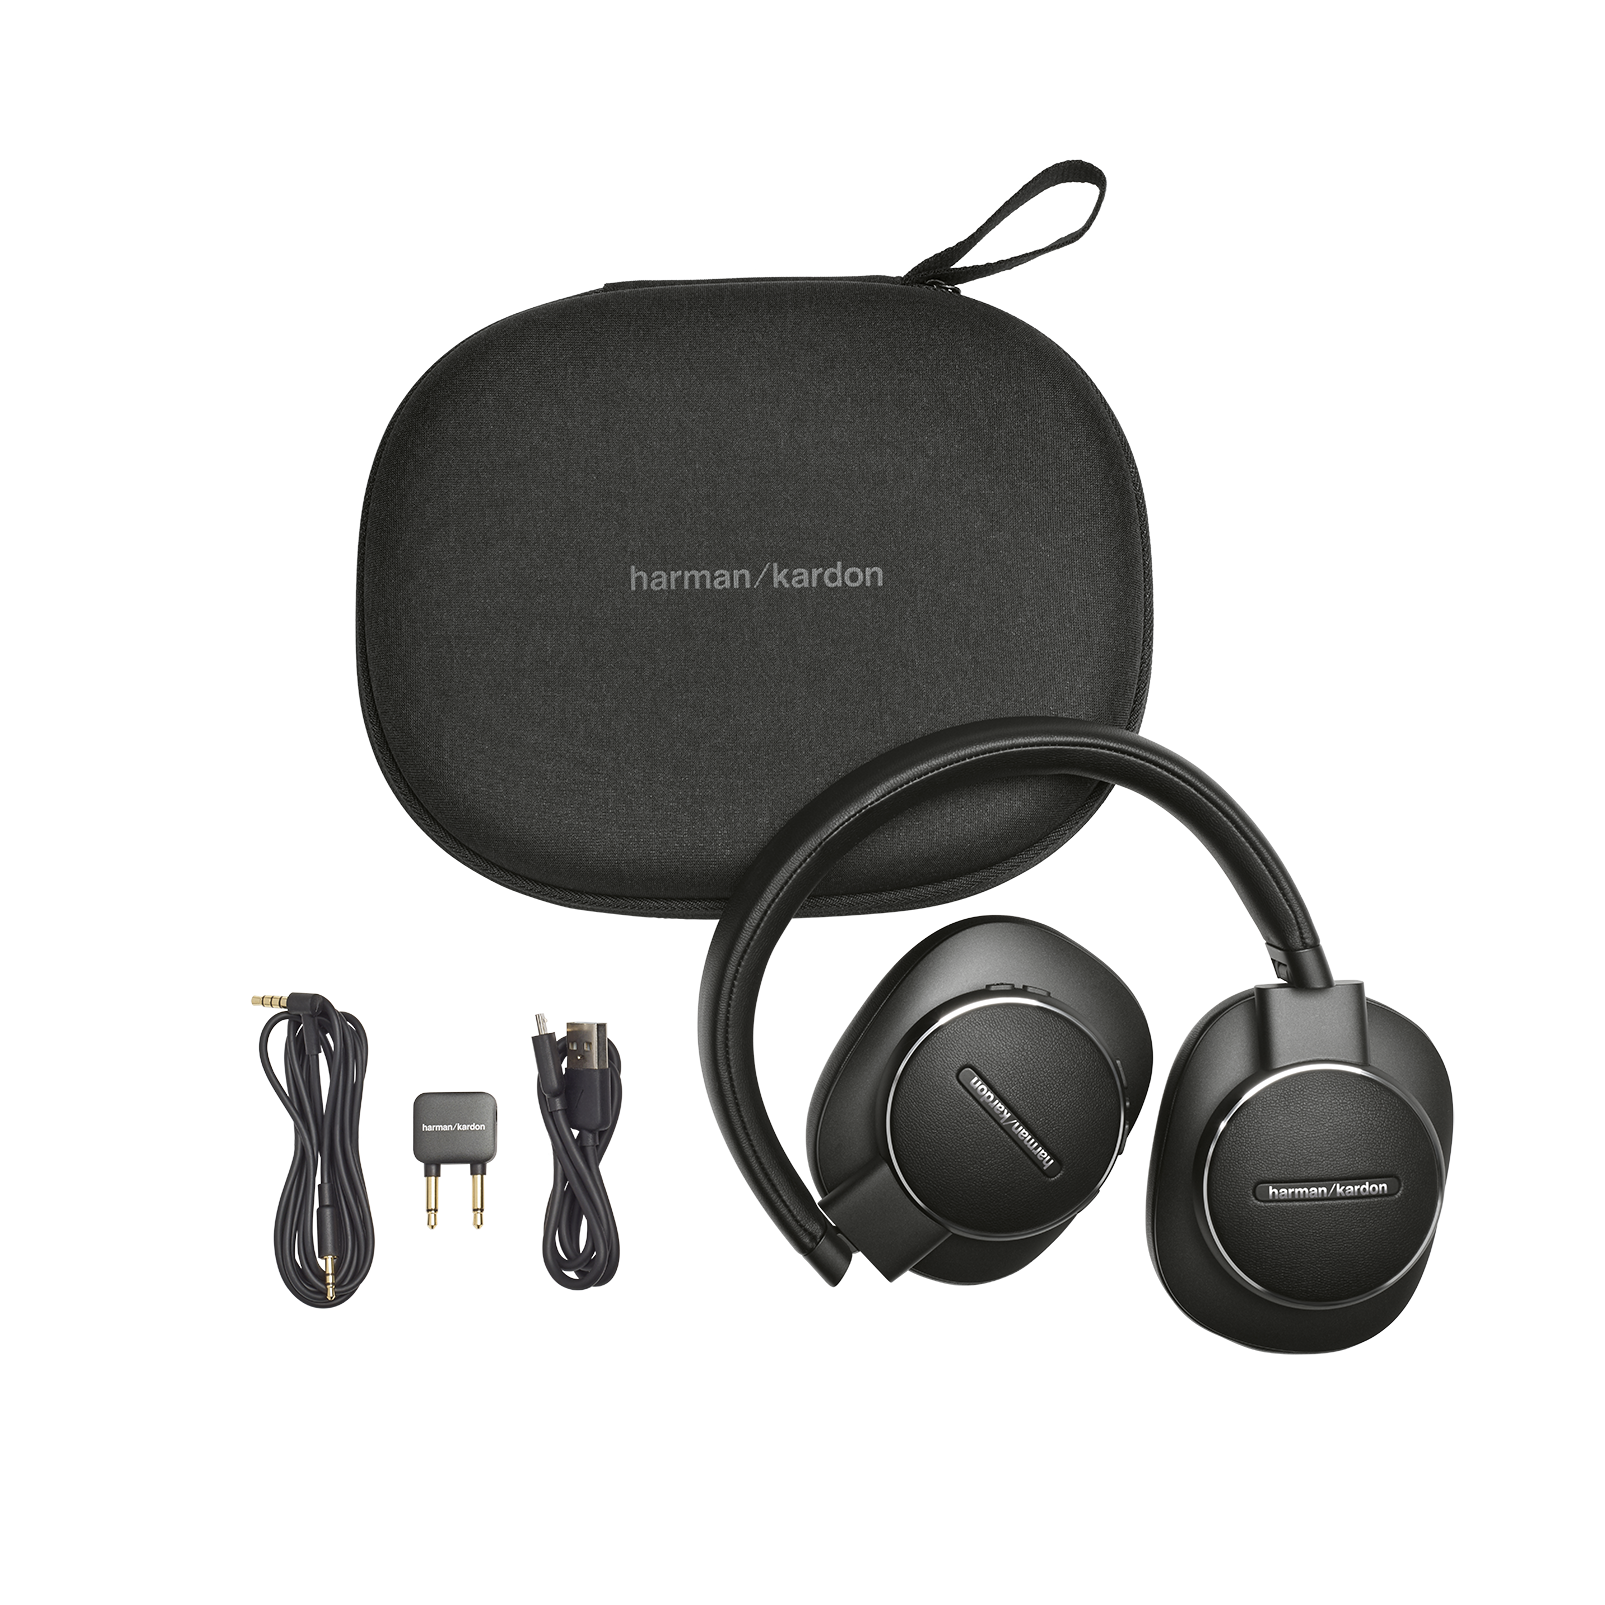 Harman Kardon FLY ANC - Black - Wireless Over-Ear NC Headphones - Detailshot 8